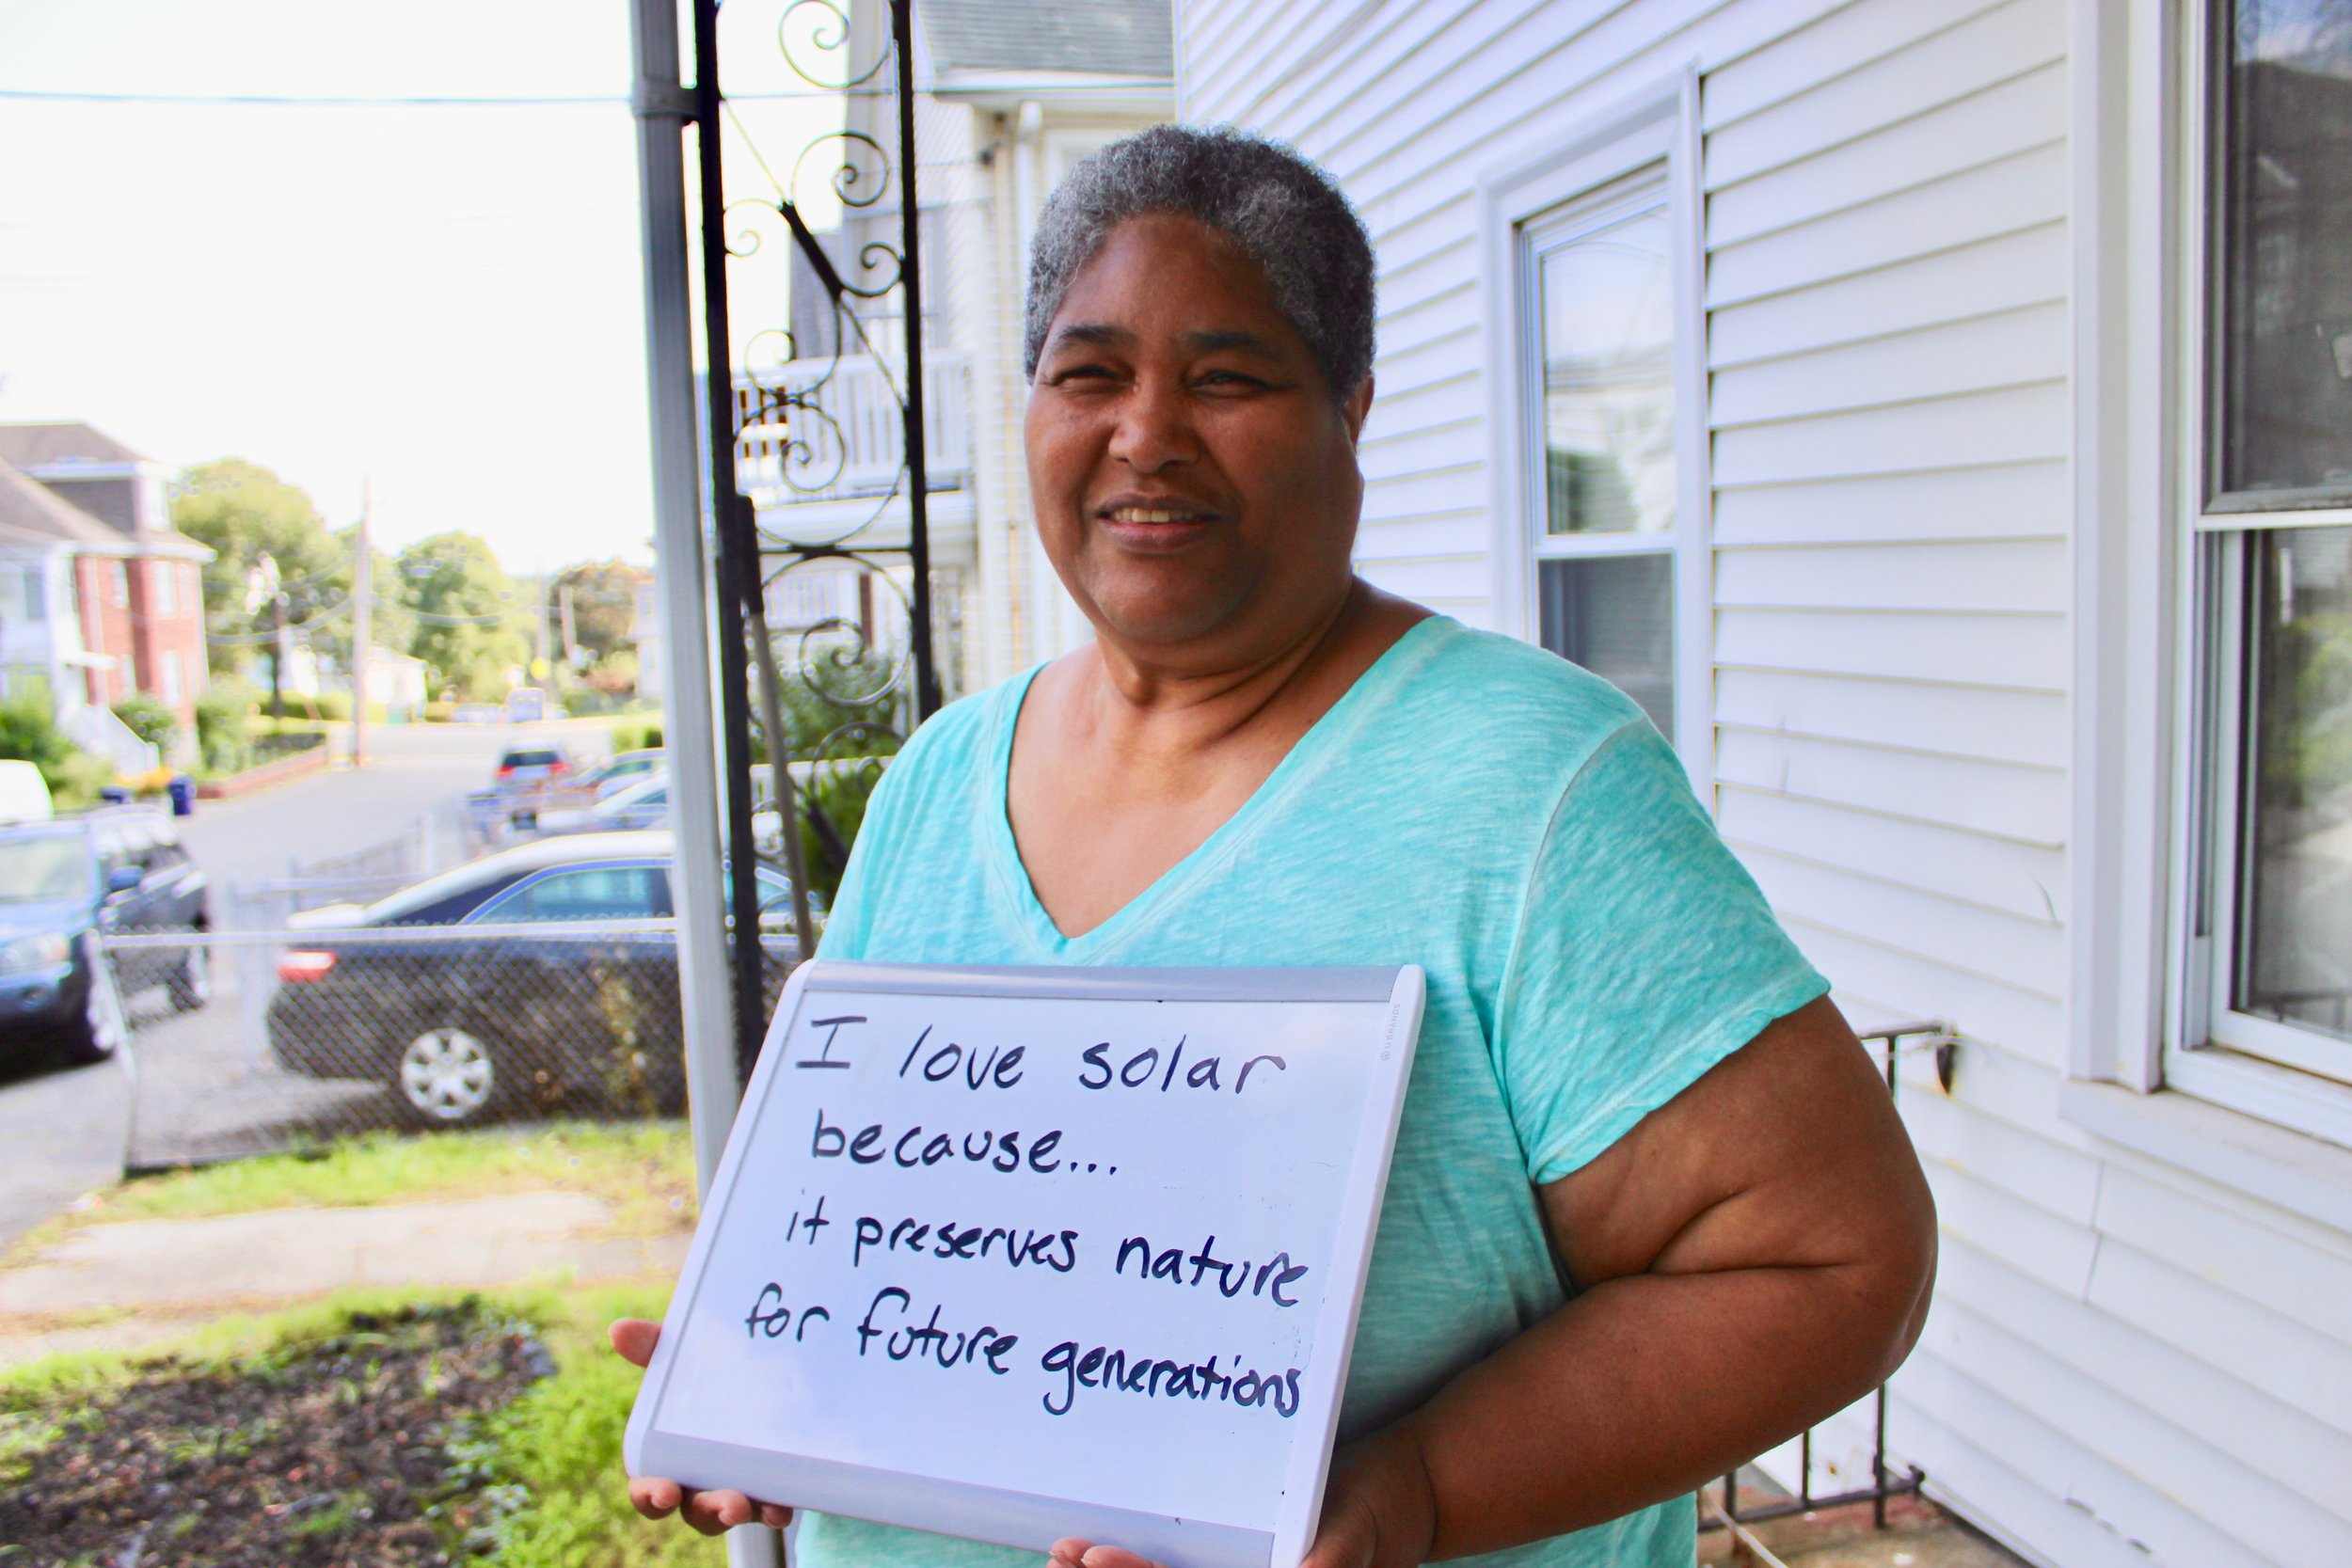 "Dorchester, MA   ""I went solar to save money. We have solar hot water and always wanted to do [solar photovoltaic] but [it] was out of the affordability range. I think that so many people who could not even think about going solar now have the opportunity to have it. I love solar because it preserves nature for future generations!"""